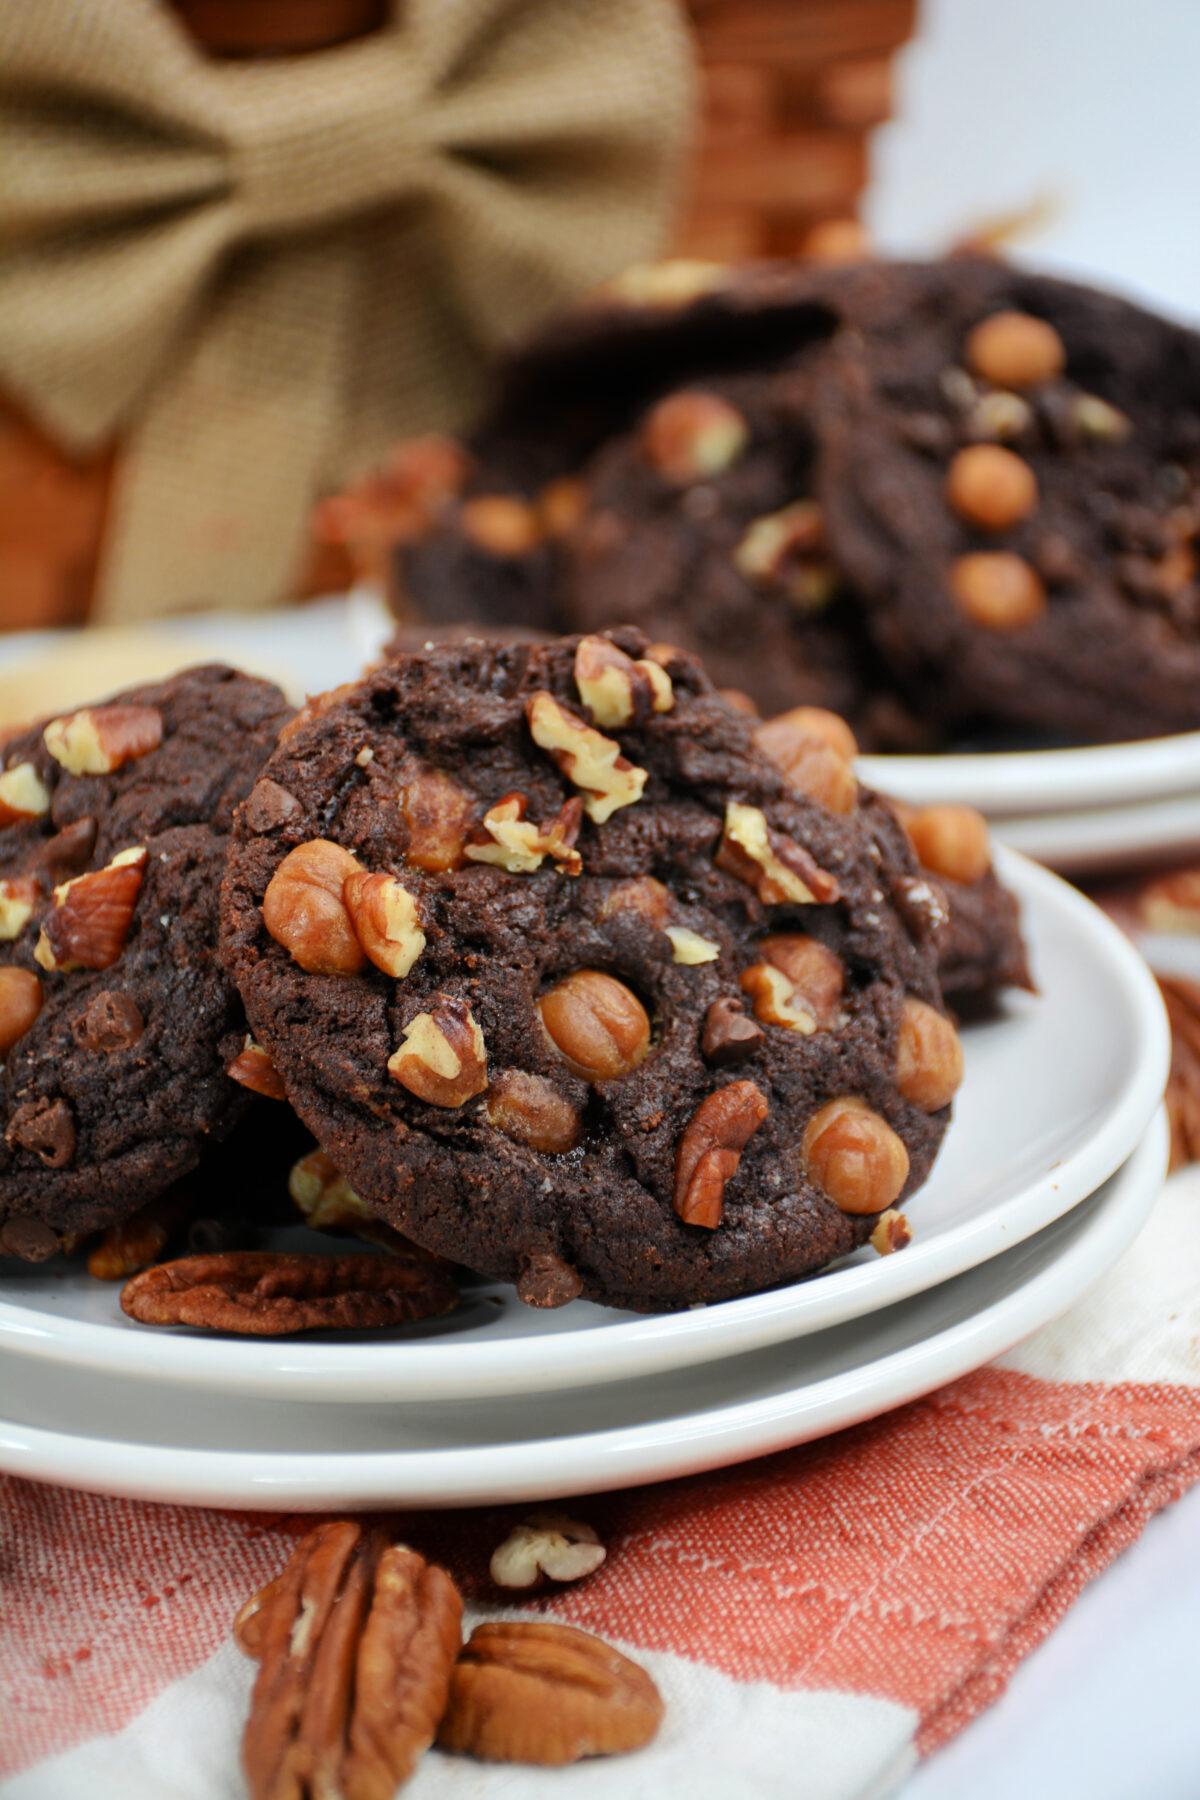 This recipe for chocolate turtle cookies is full of chocolate, caramel and pecan goodness! Easy to make and fun to eat cookie recipe.